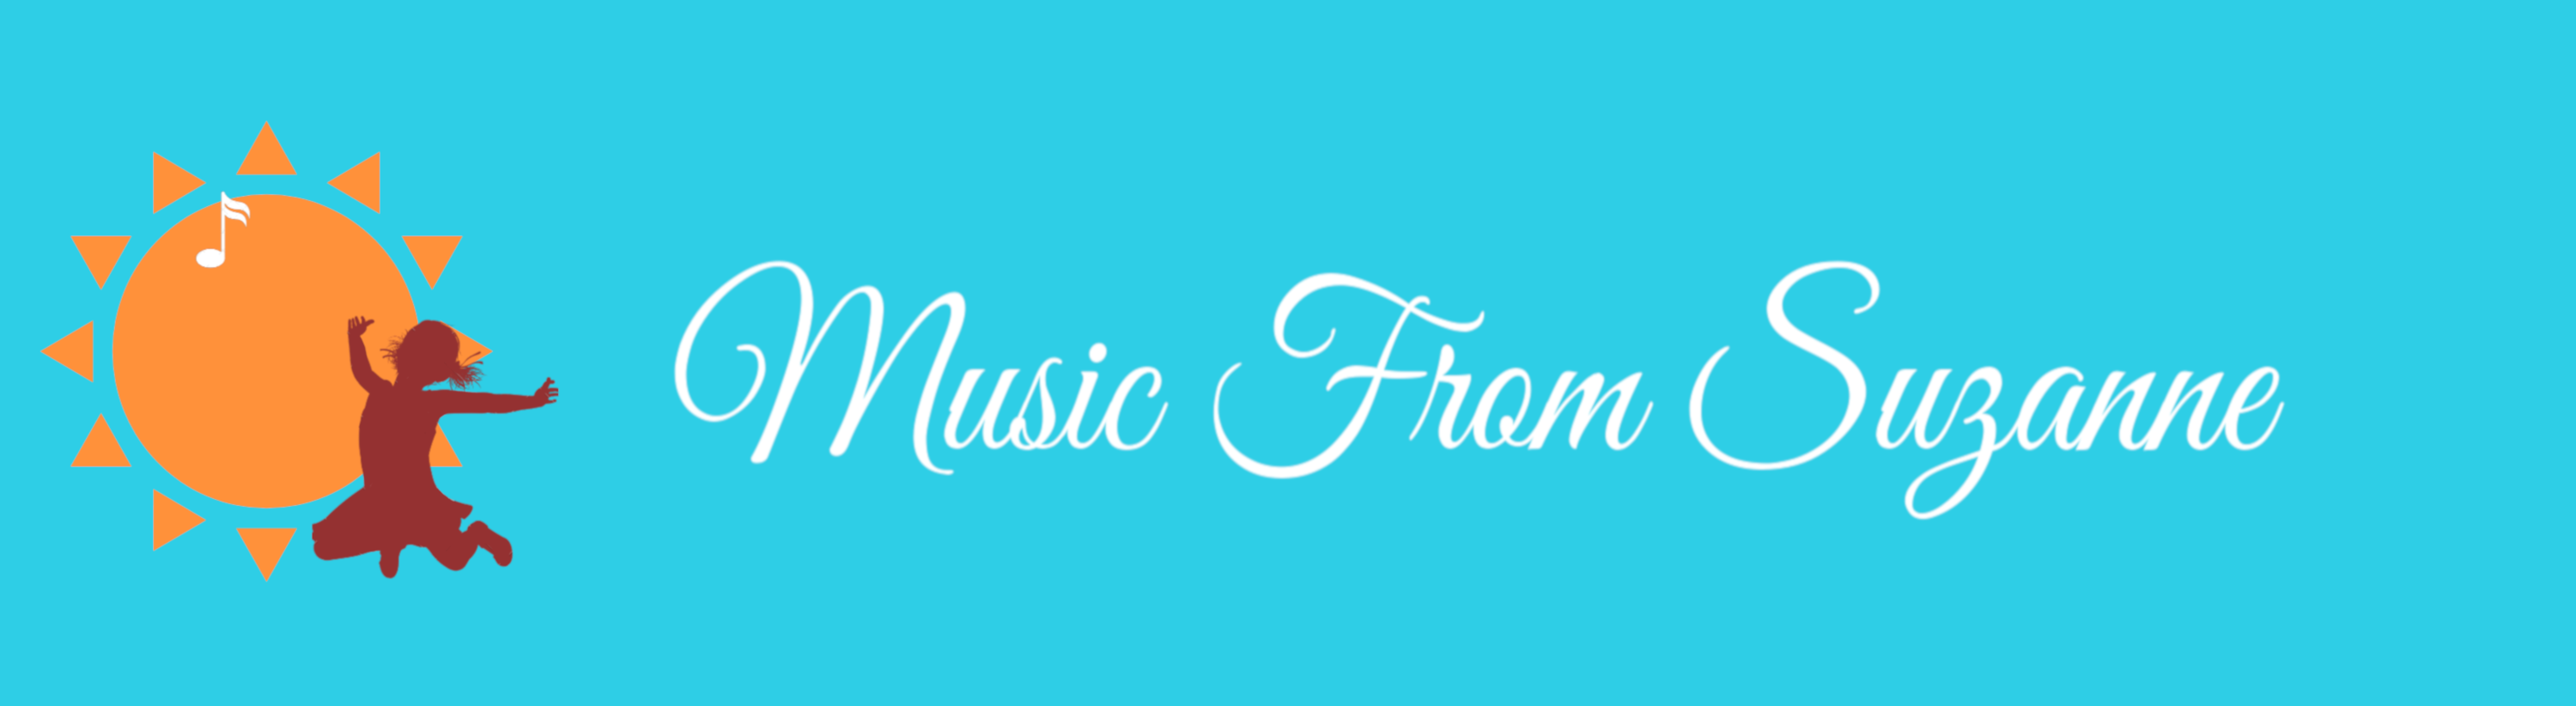 Music From Suzanne